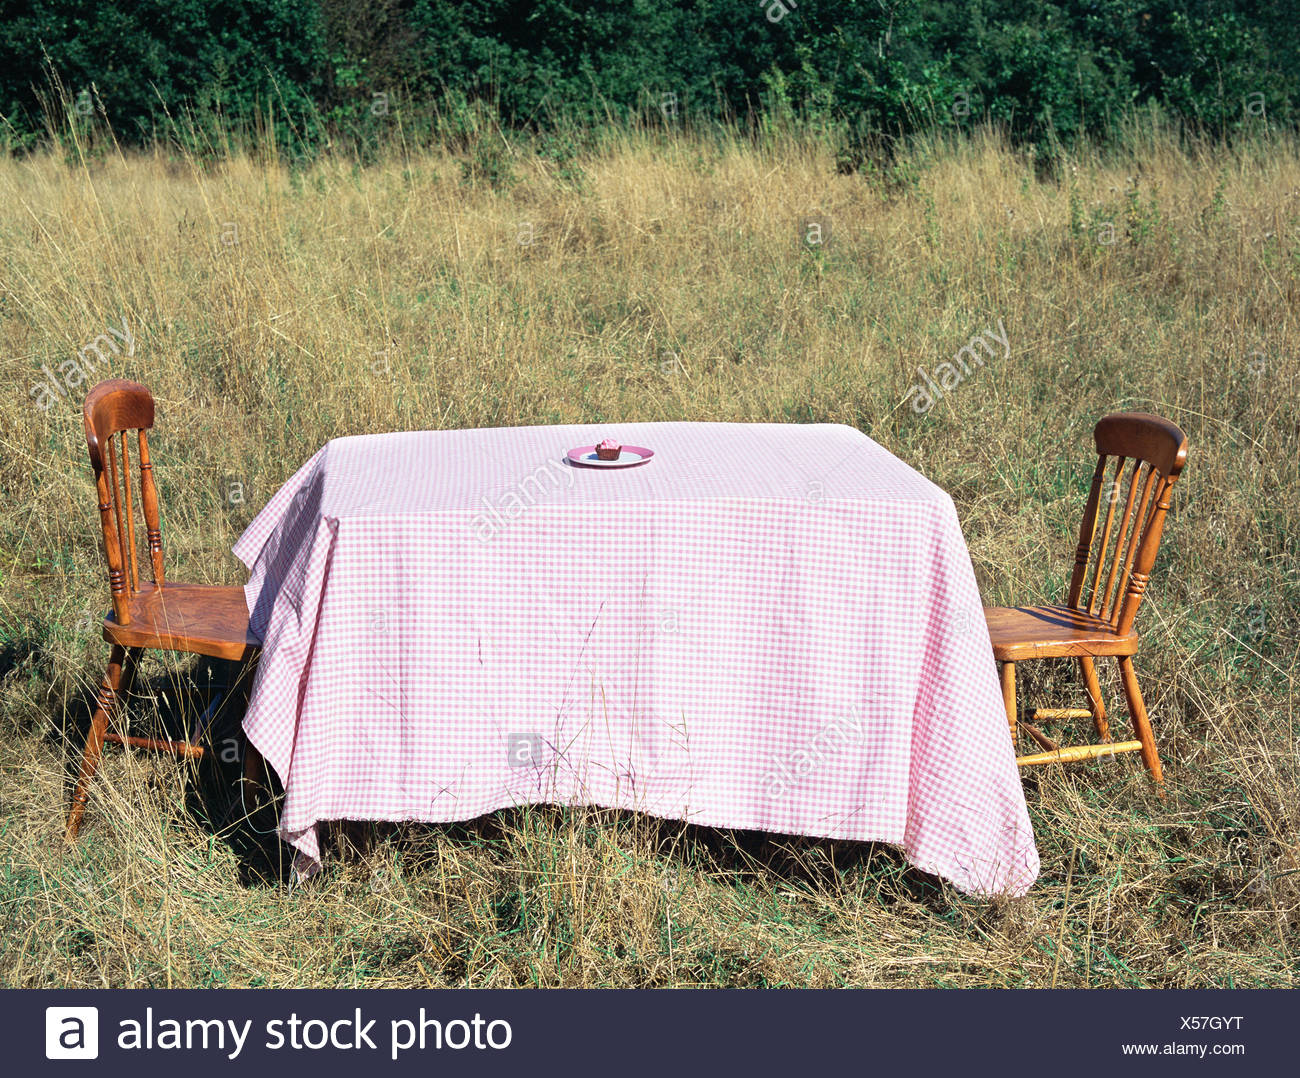 Table and chairs in a field - Stock Image